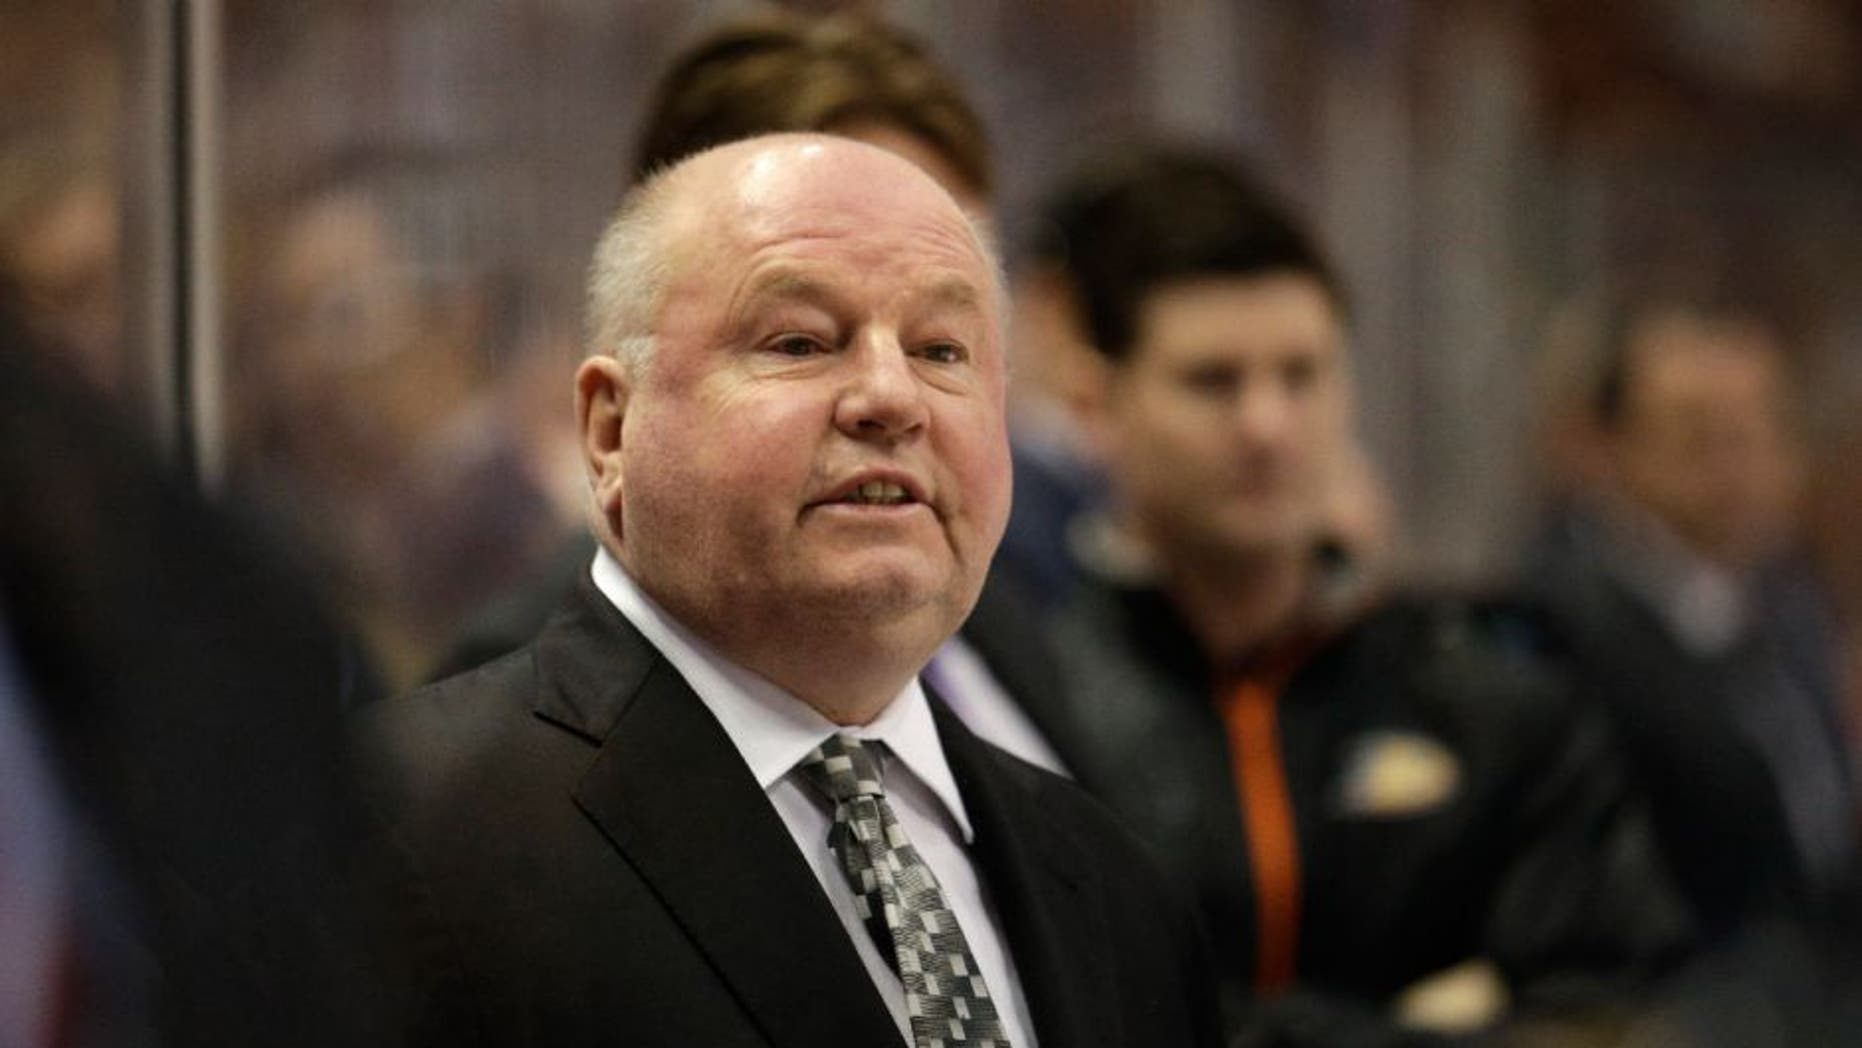 The Minnesota Wild have hired former Anaheim Ducks coach Bruce Boudreau.